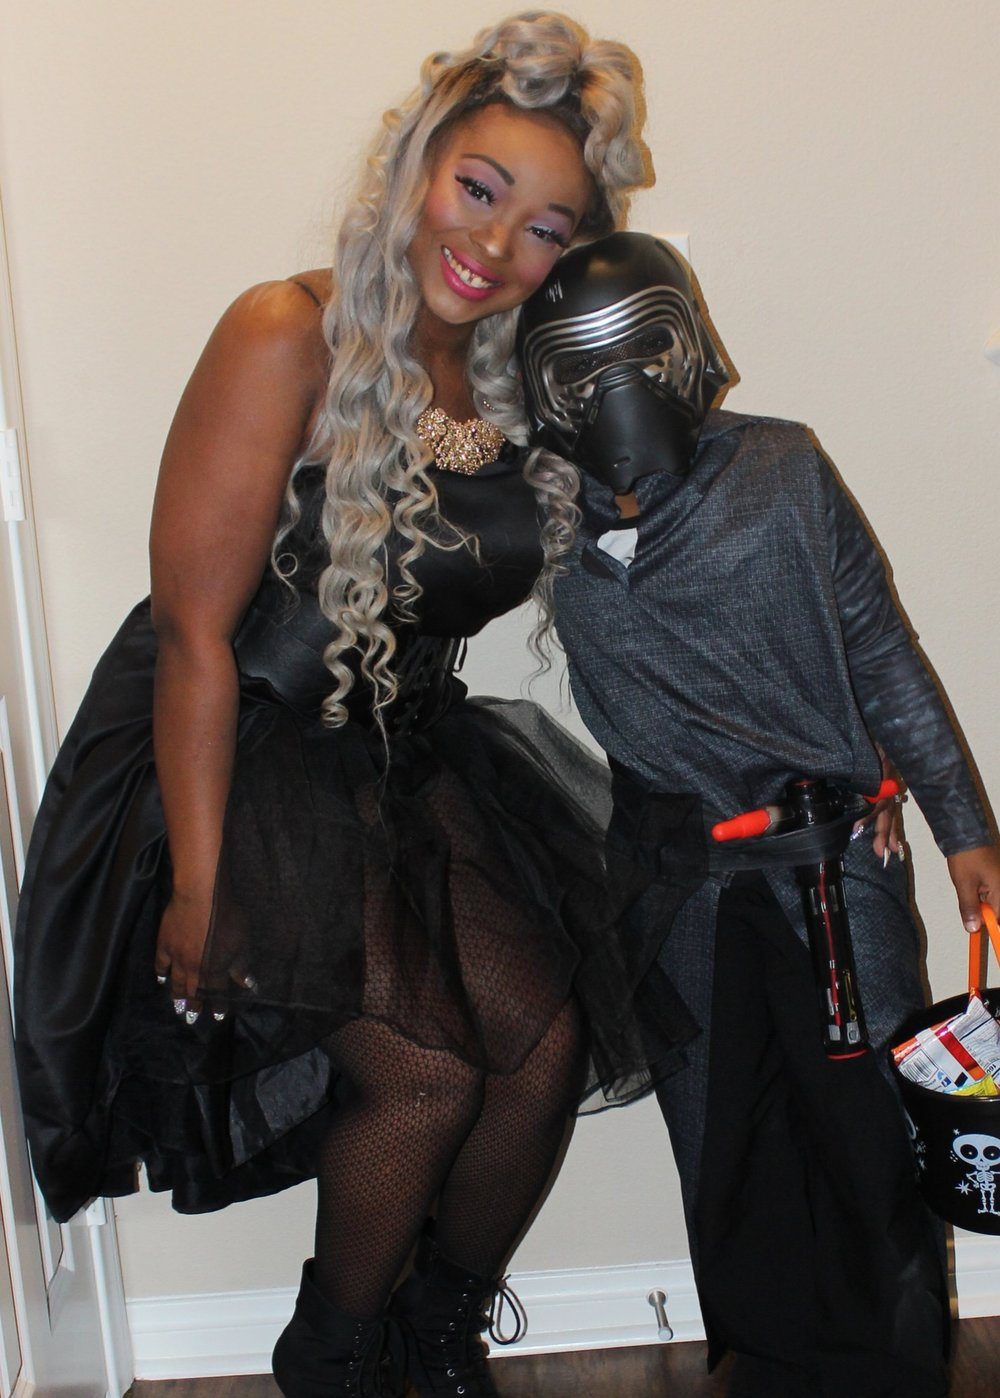 - Check out my DIY Inspired Halloween Costume right in th Fashion tab above.